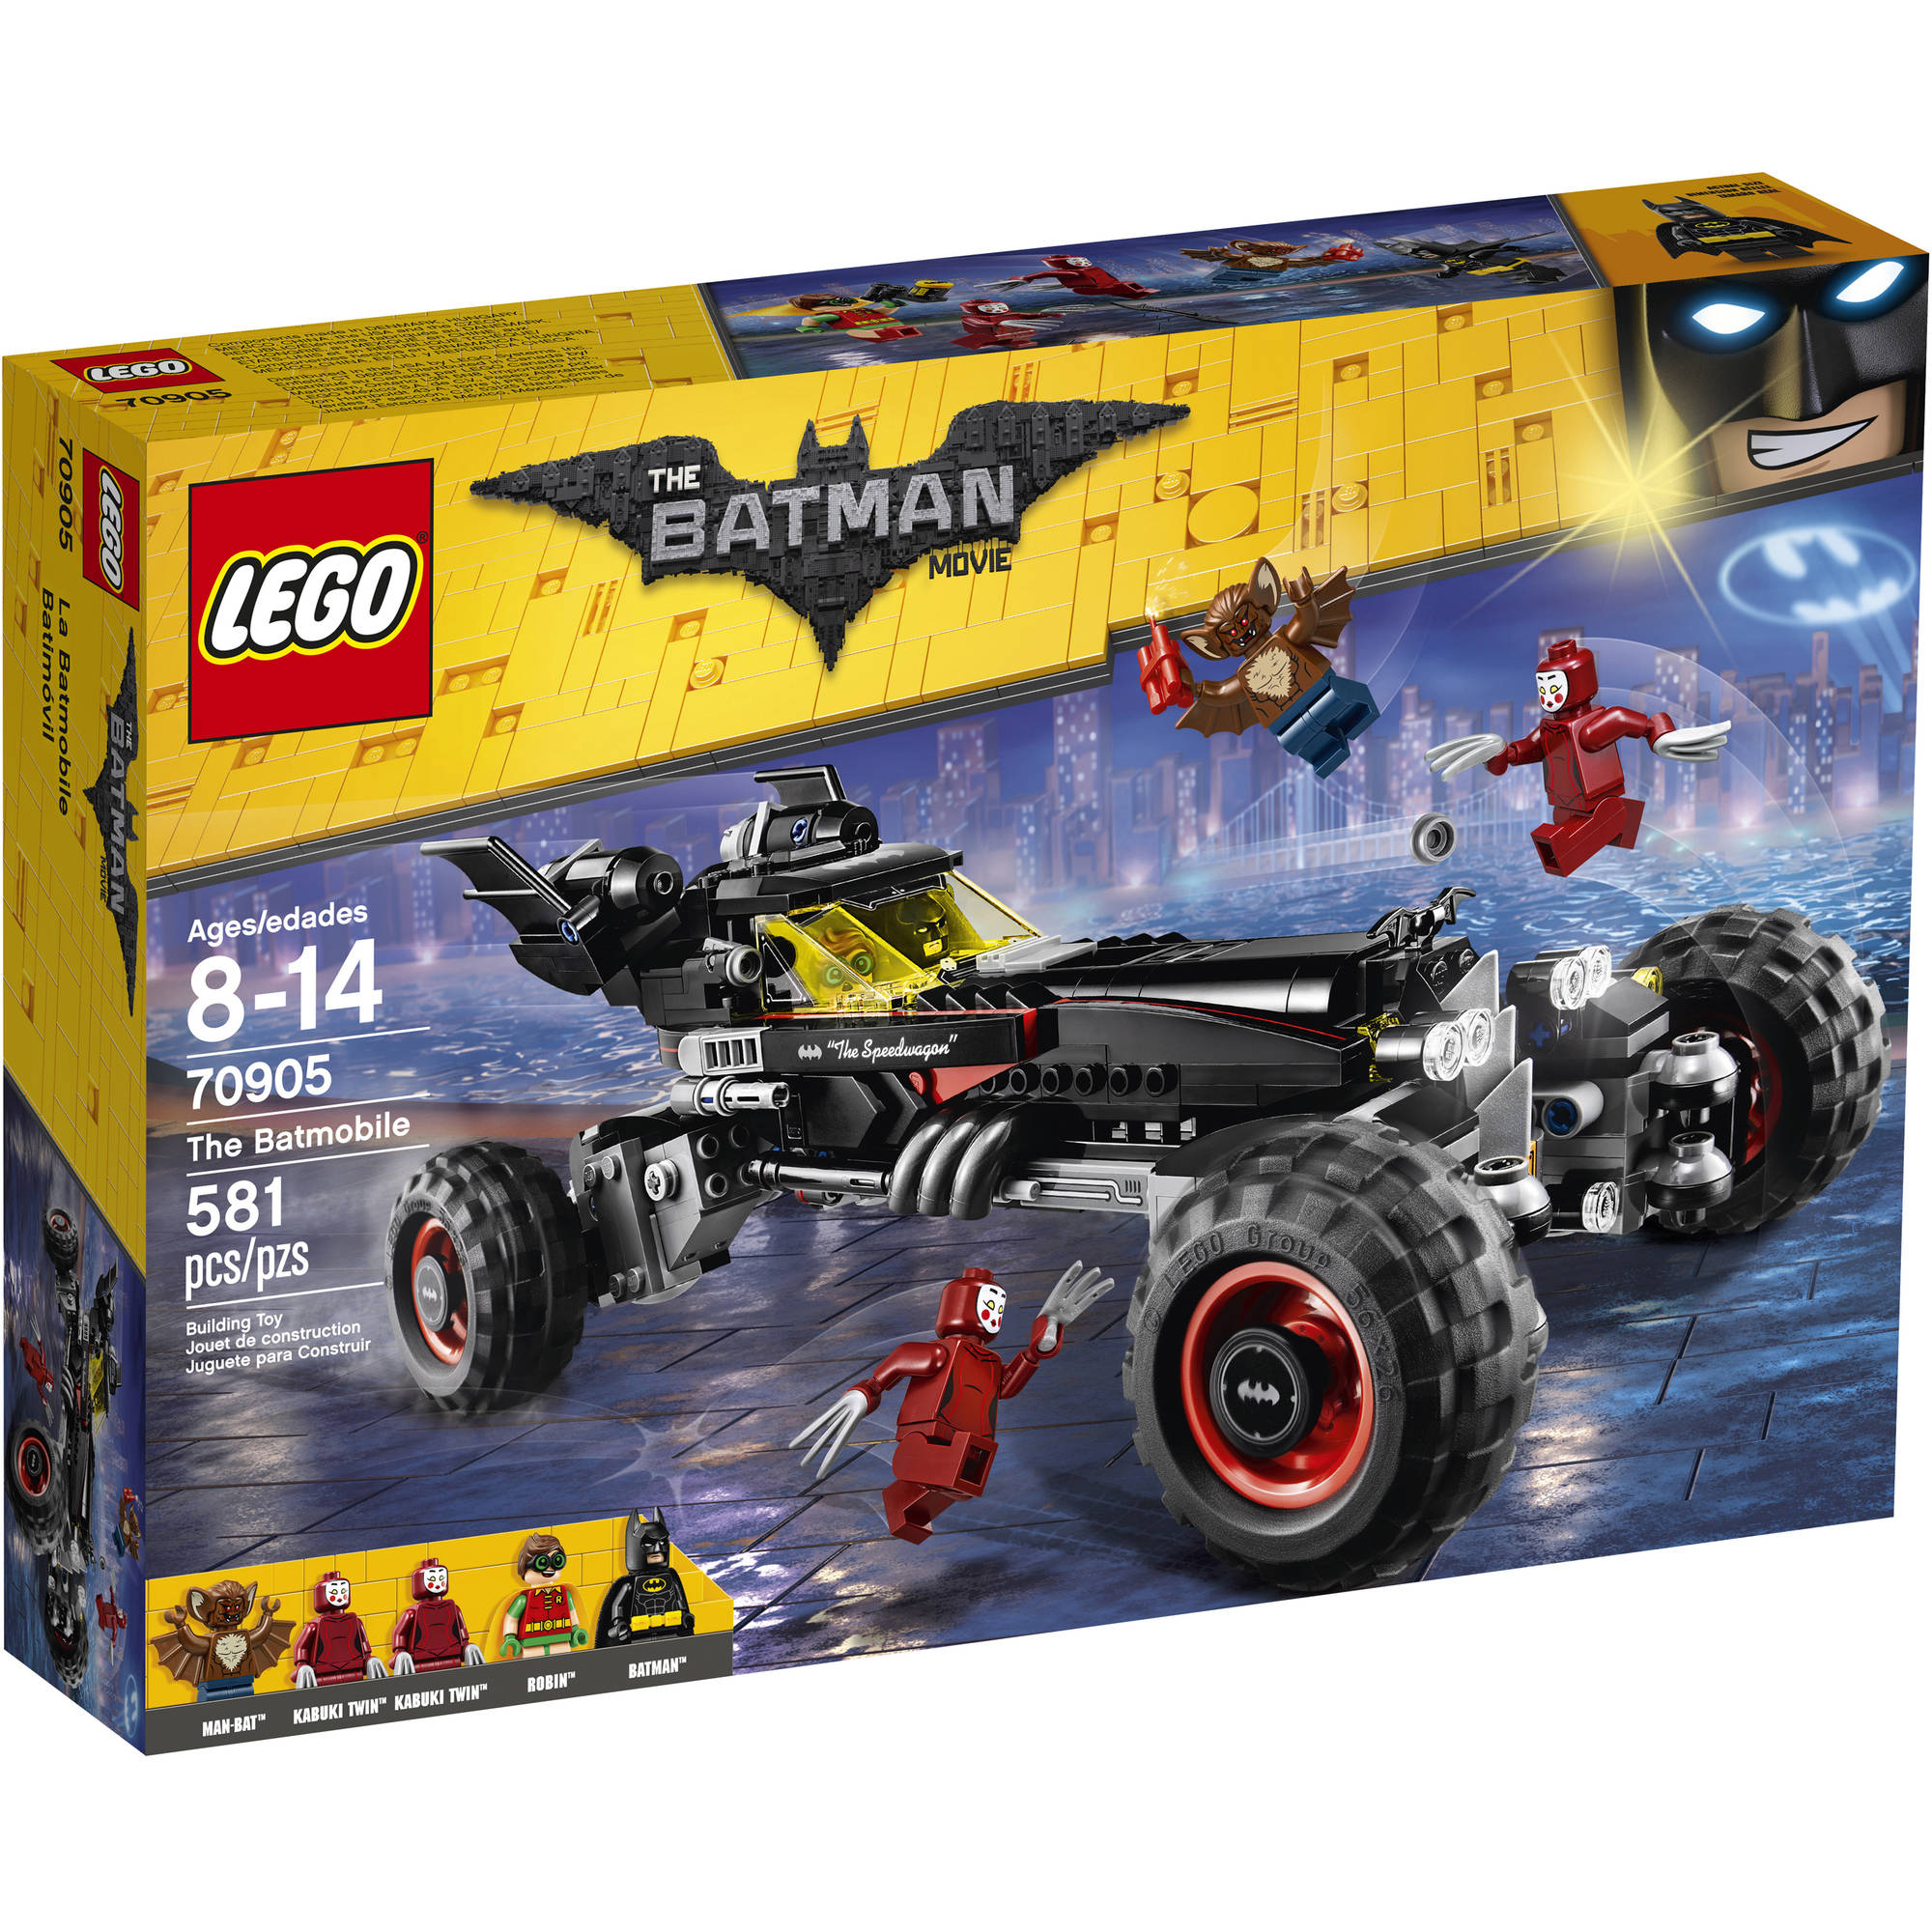 The LEGO Batman Movie - The Batmobile (70905)